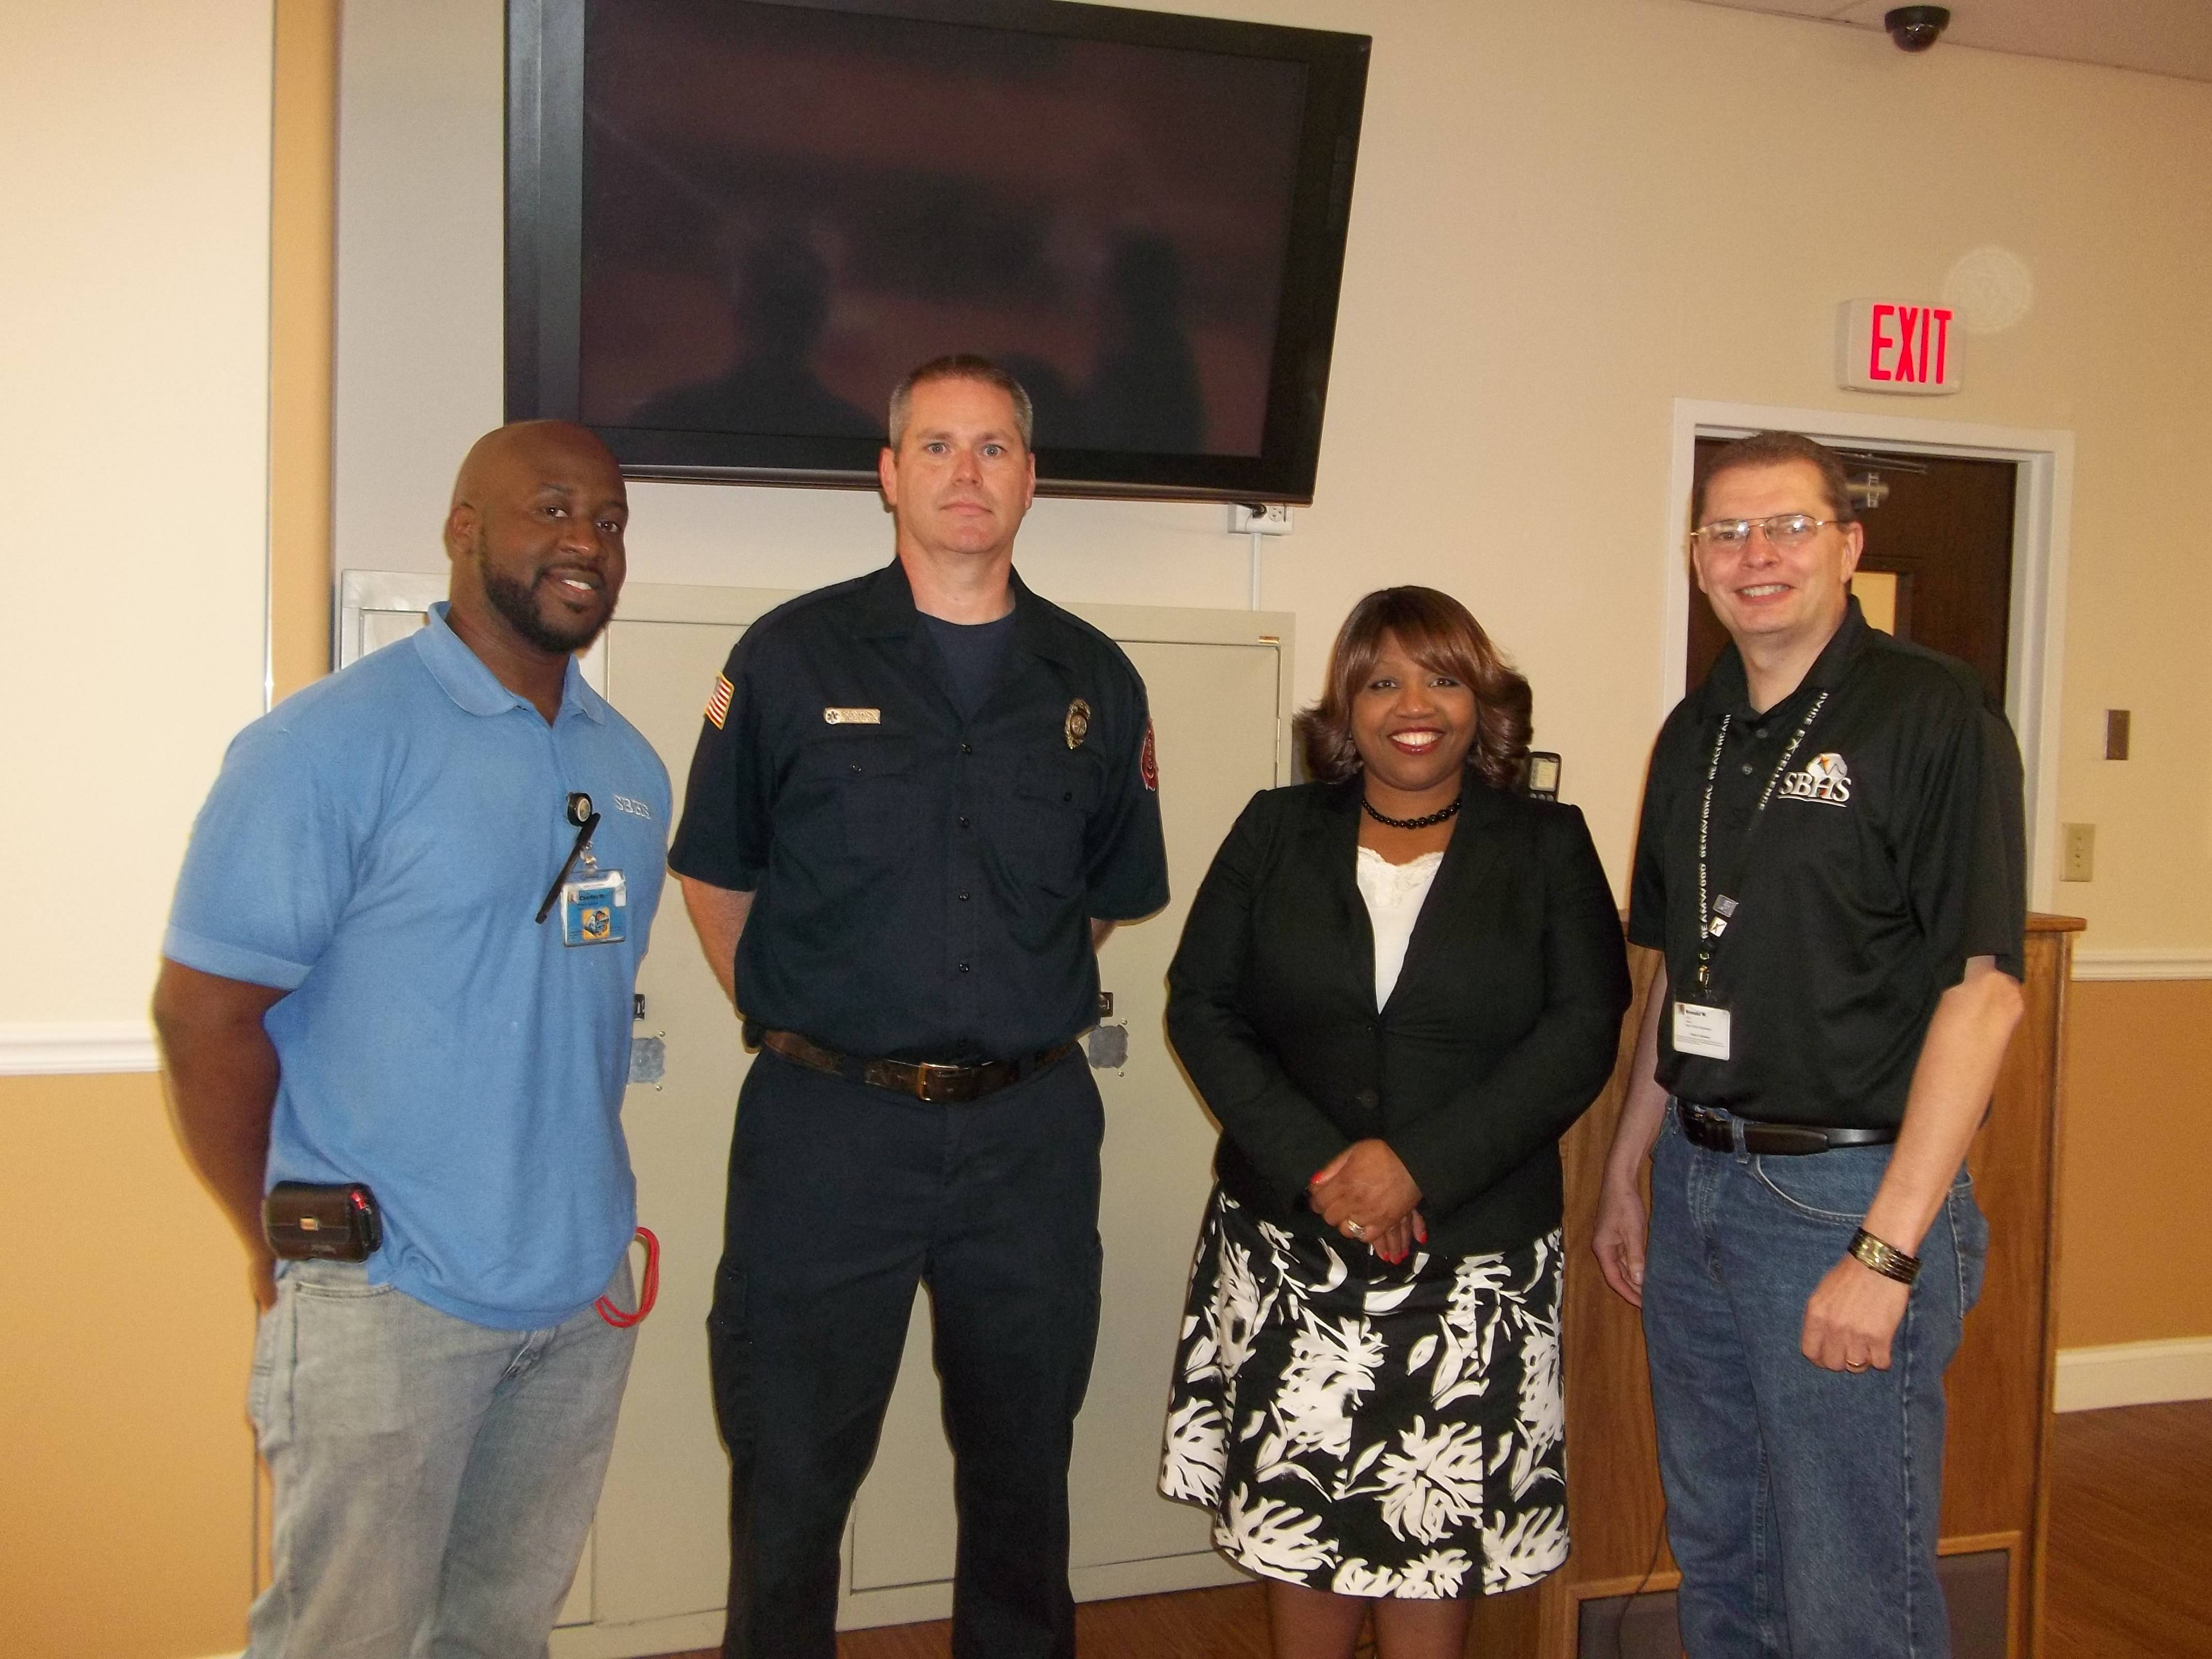 From left to right:  Officer Kisch, Jelani Lesure,Greg Moorman, Officer Stastny, Ronald Weglarz and Patricia McClure-ChessierBrynn Obrien